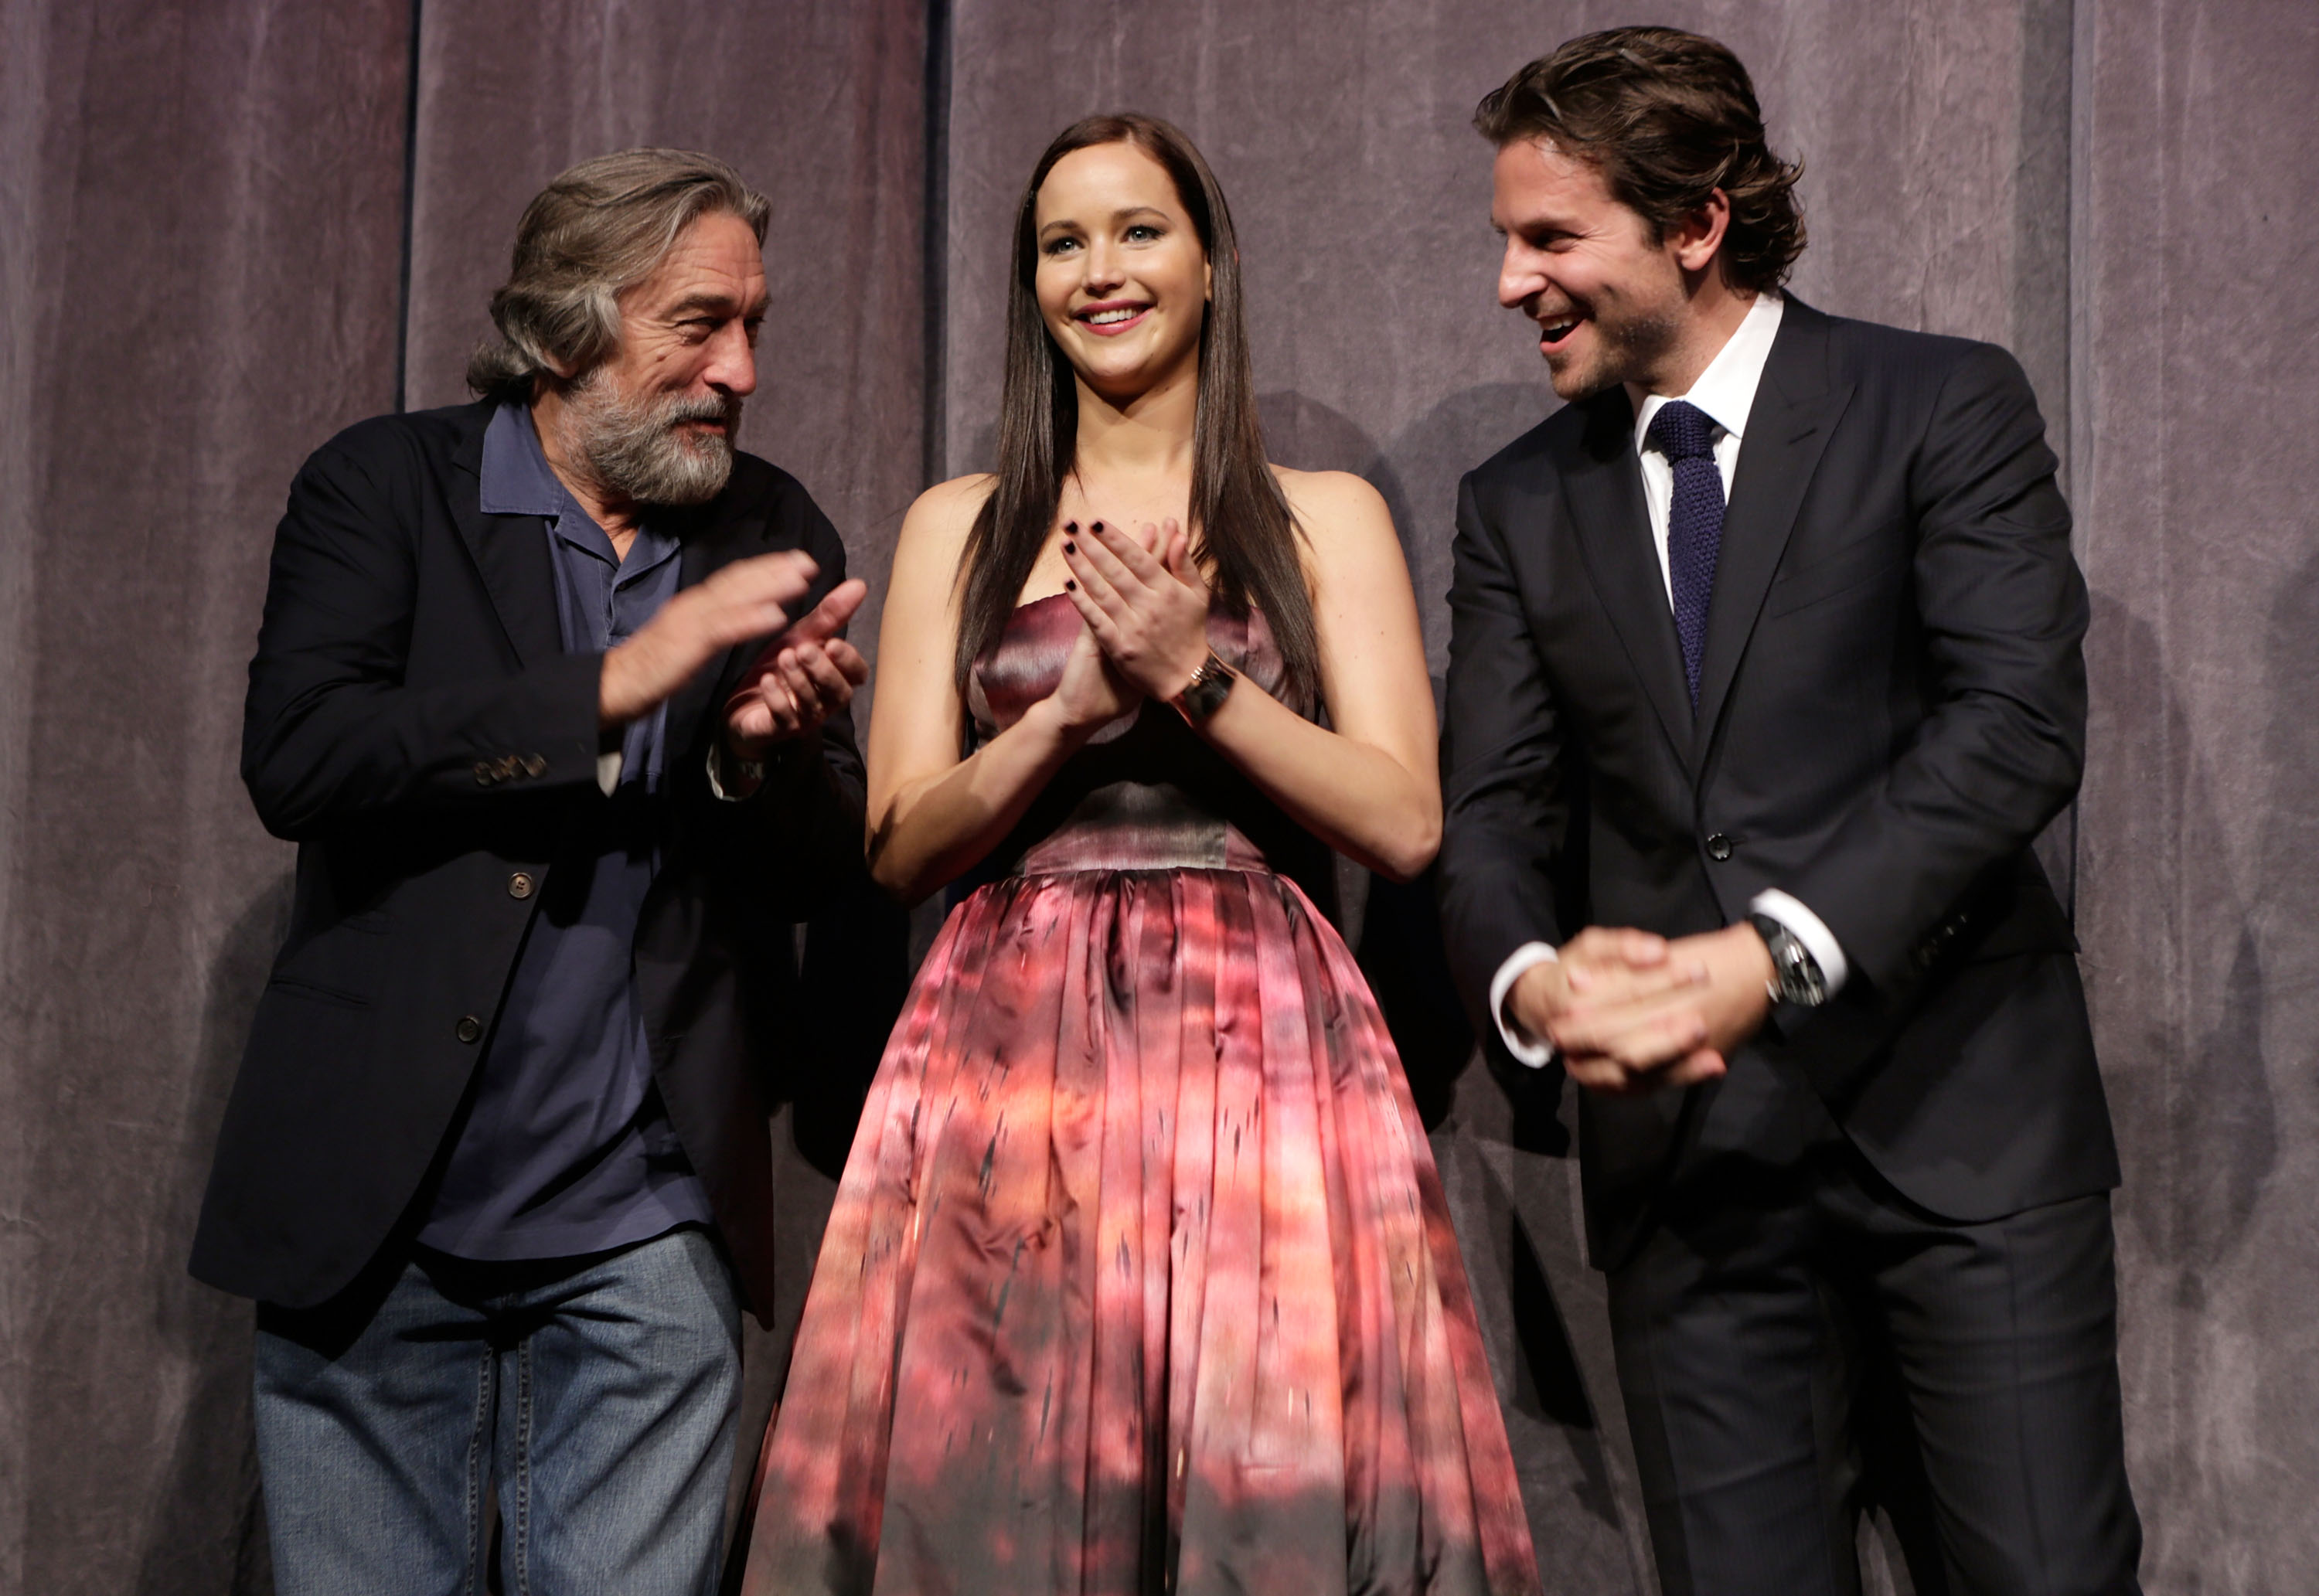 Robert De Niro, Jennifer Lawrence and Bradley Cooper at the Silver Linings Playbook premiere during the 2012 Toronto International Film Festival on Sept. 8, 2012 .